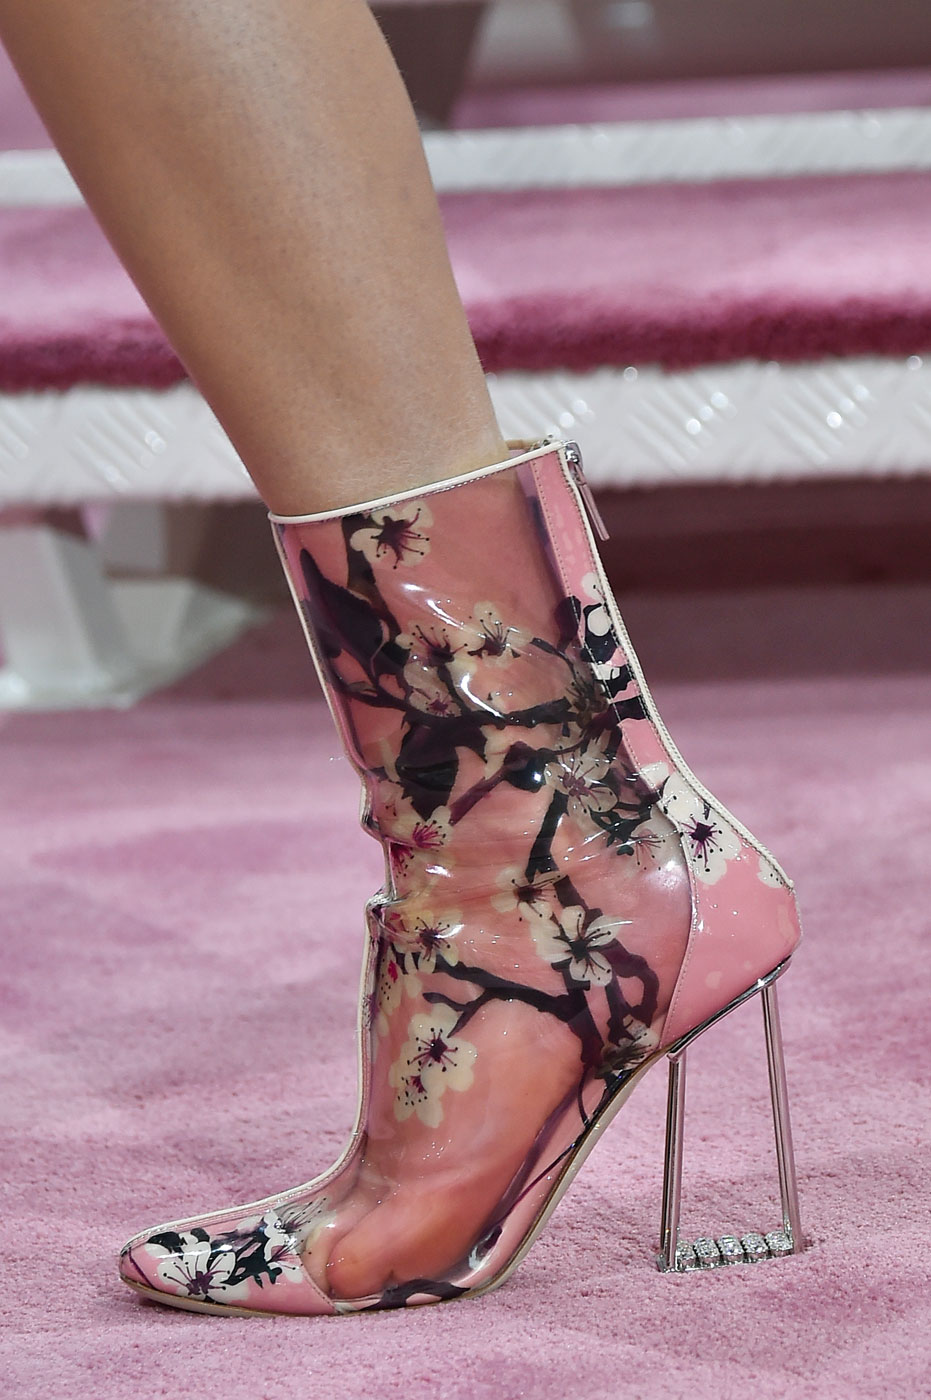 Christian-Dior-fashion-runway-show-close-ups-haute-couture-paris-spring-summer-2015-the-impression-060